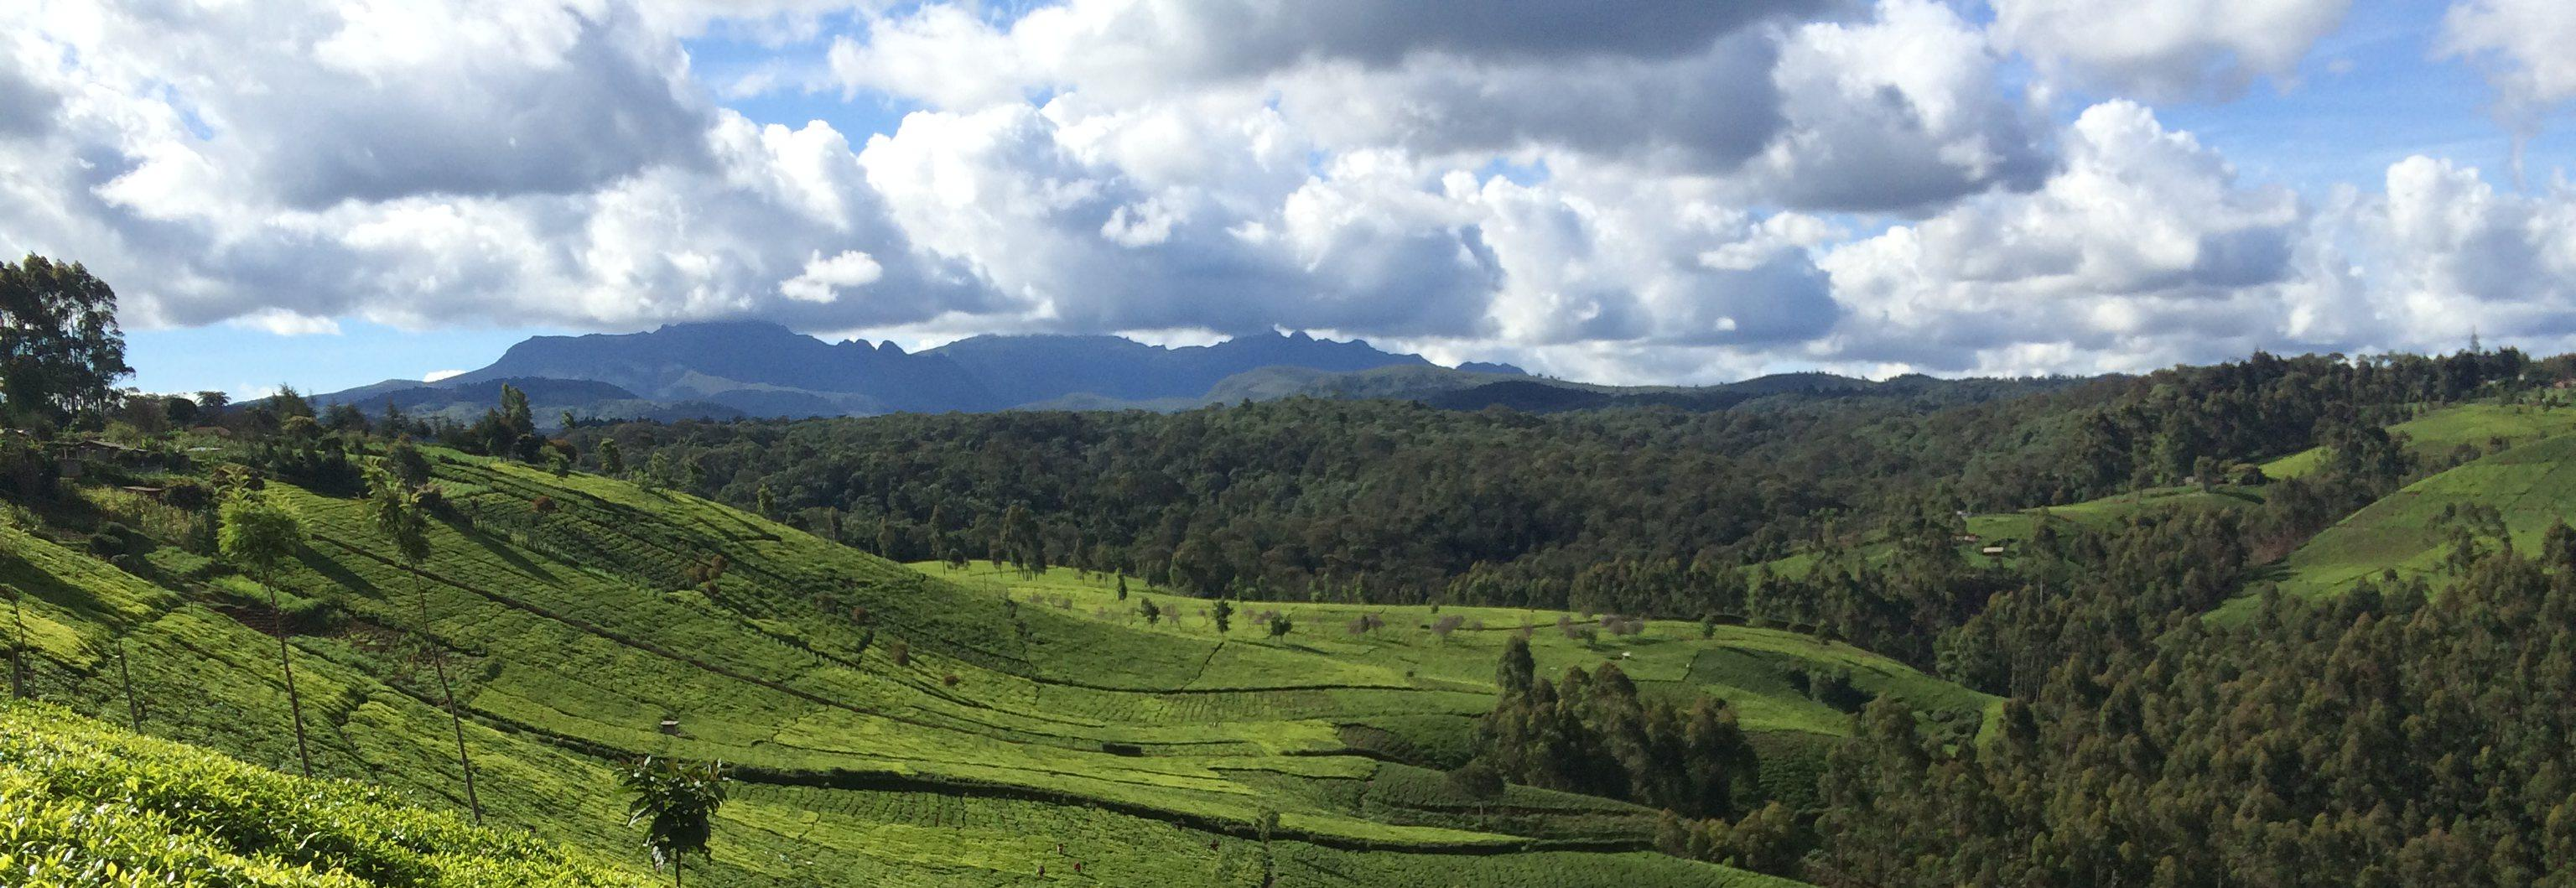 tea_fields_Kenya © Rainforest Alliance